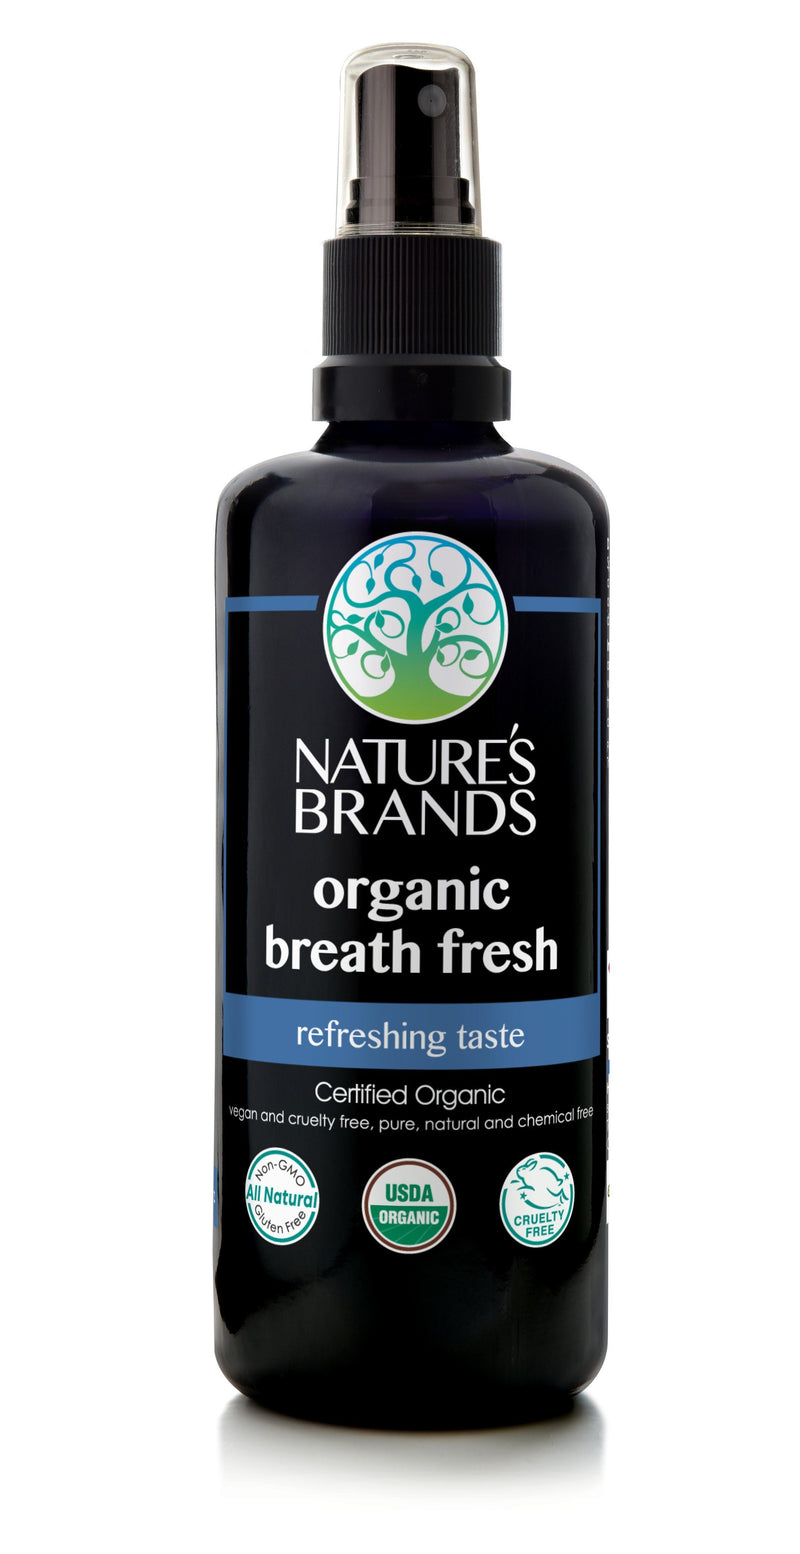 Herbal Choice Mari Organic Breath Fresh - Herbal Choice Mari Organic Breath Fresh - 3.4floz